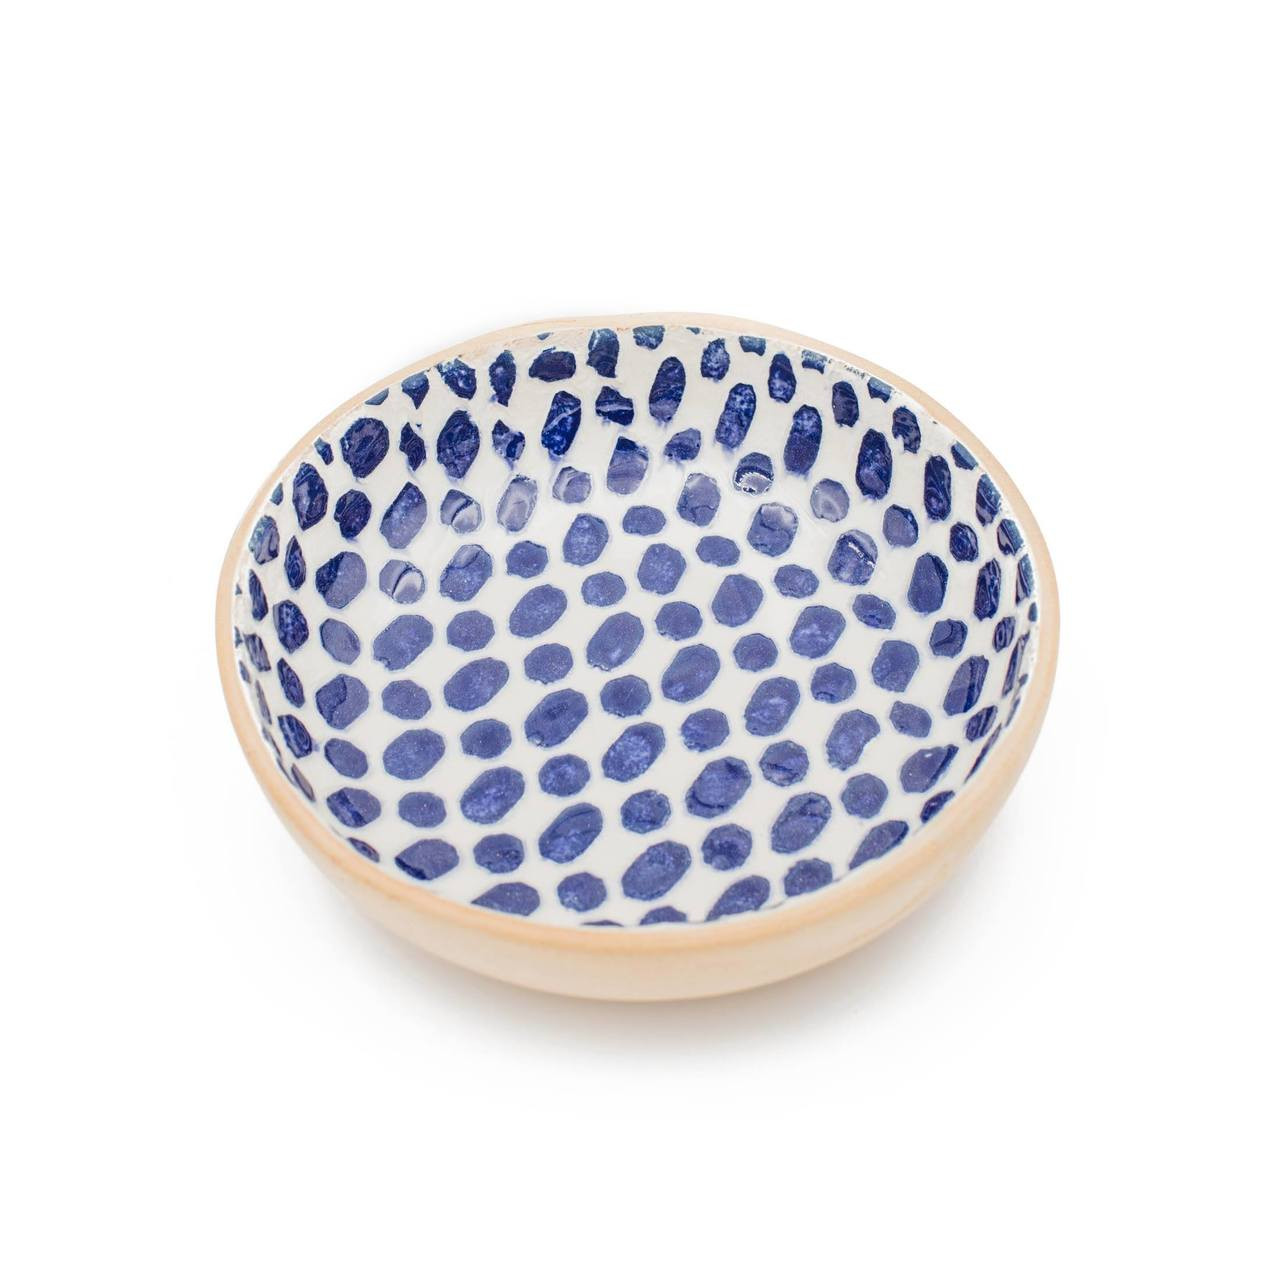 Terrafirma Ceramics - Handmade Ceramic Fruit Dessert Bowl - Pattern: Dot, Color: Cobalt by Ellen Evans (white background)